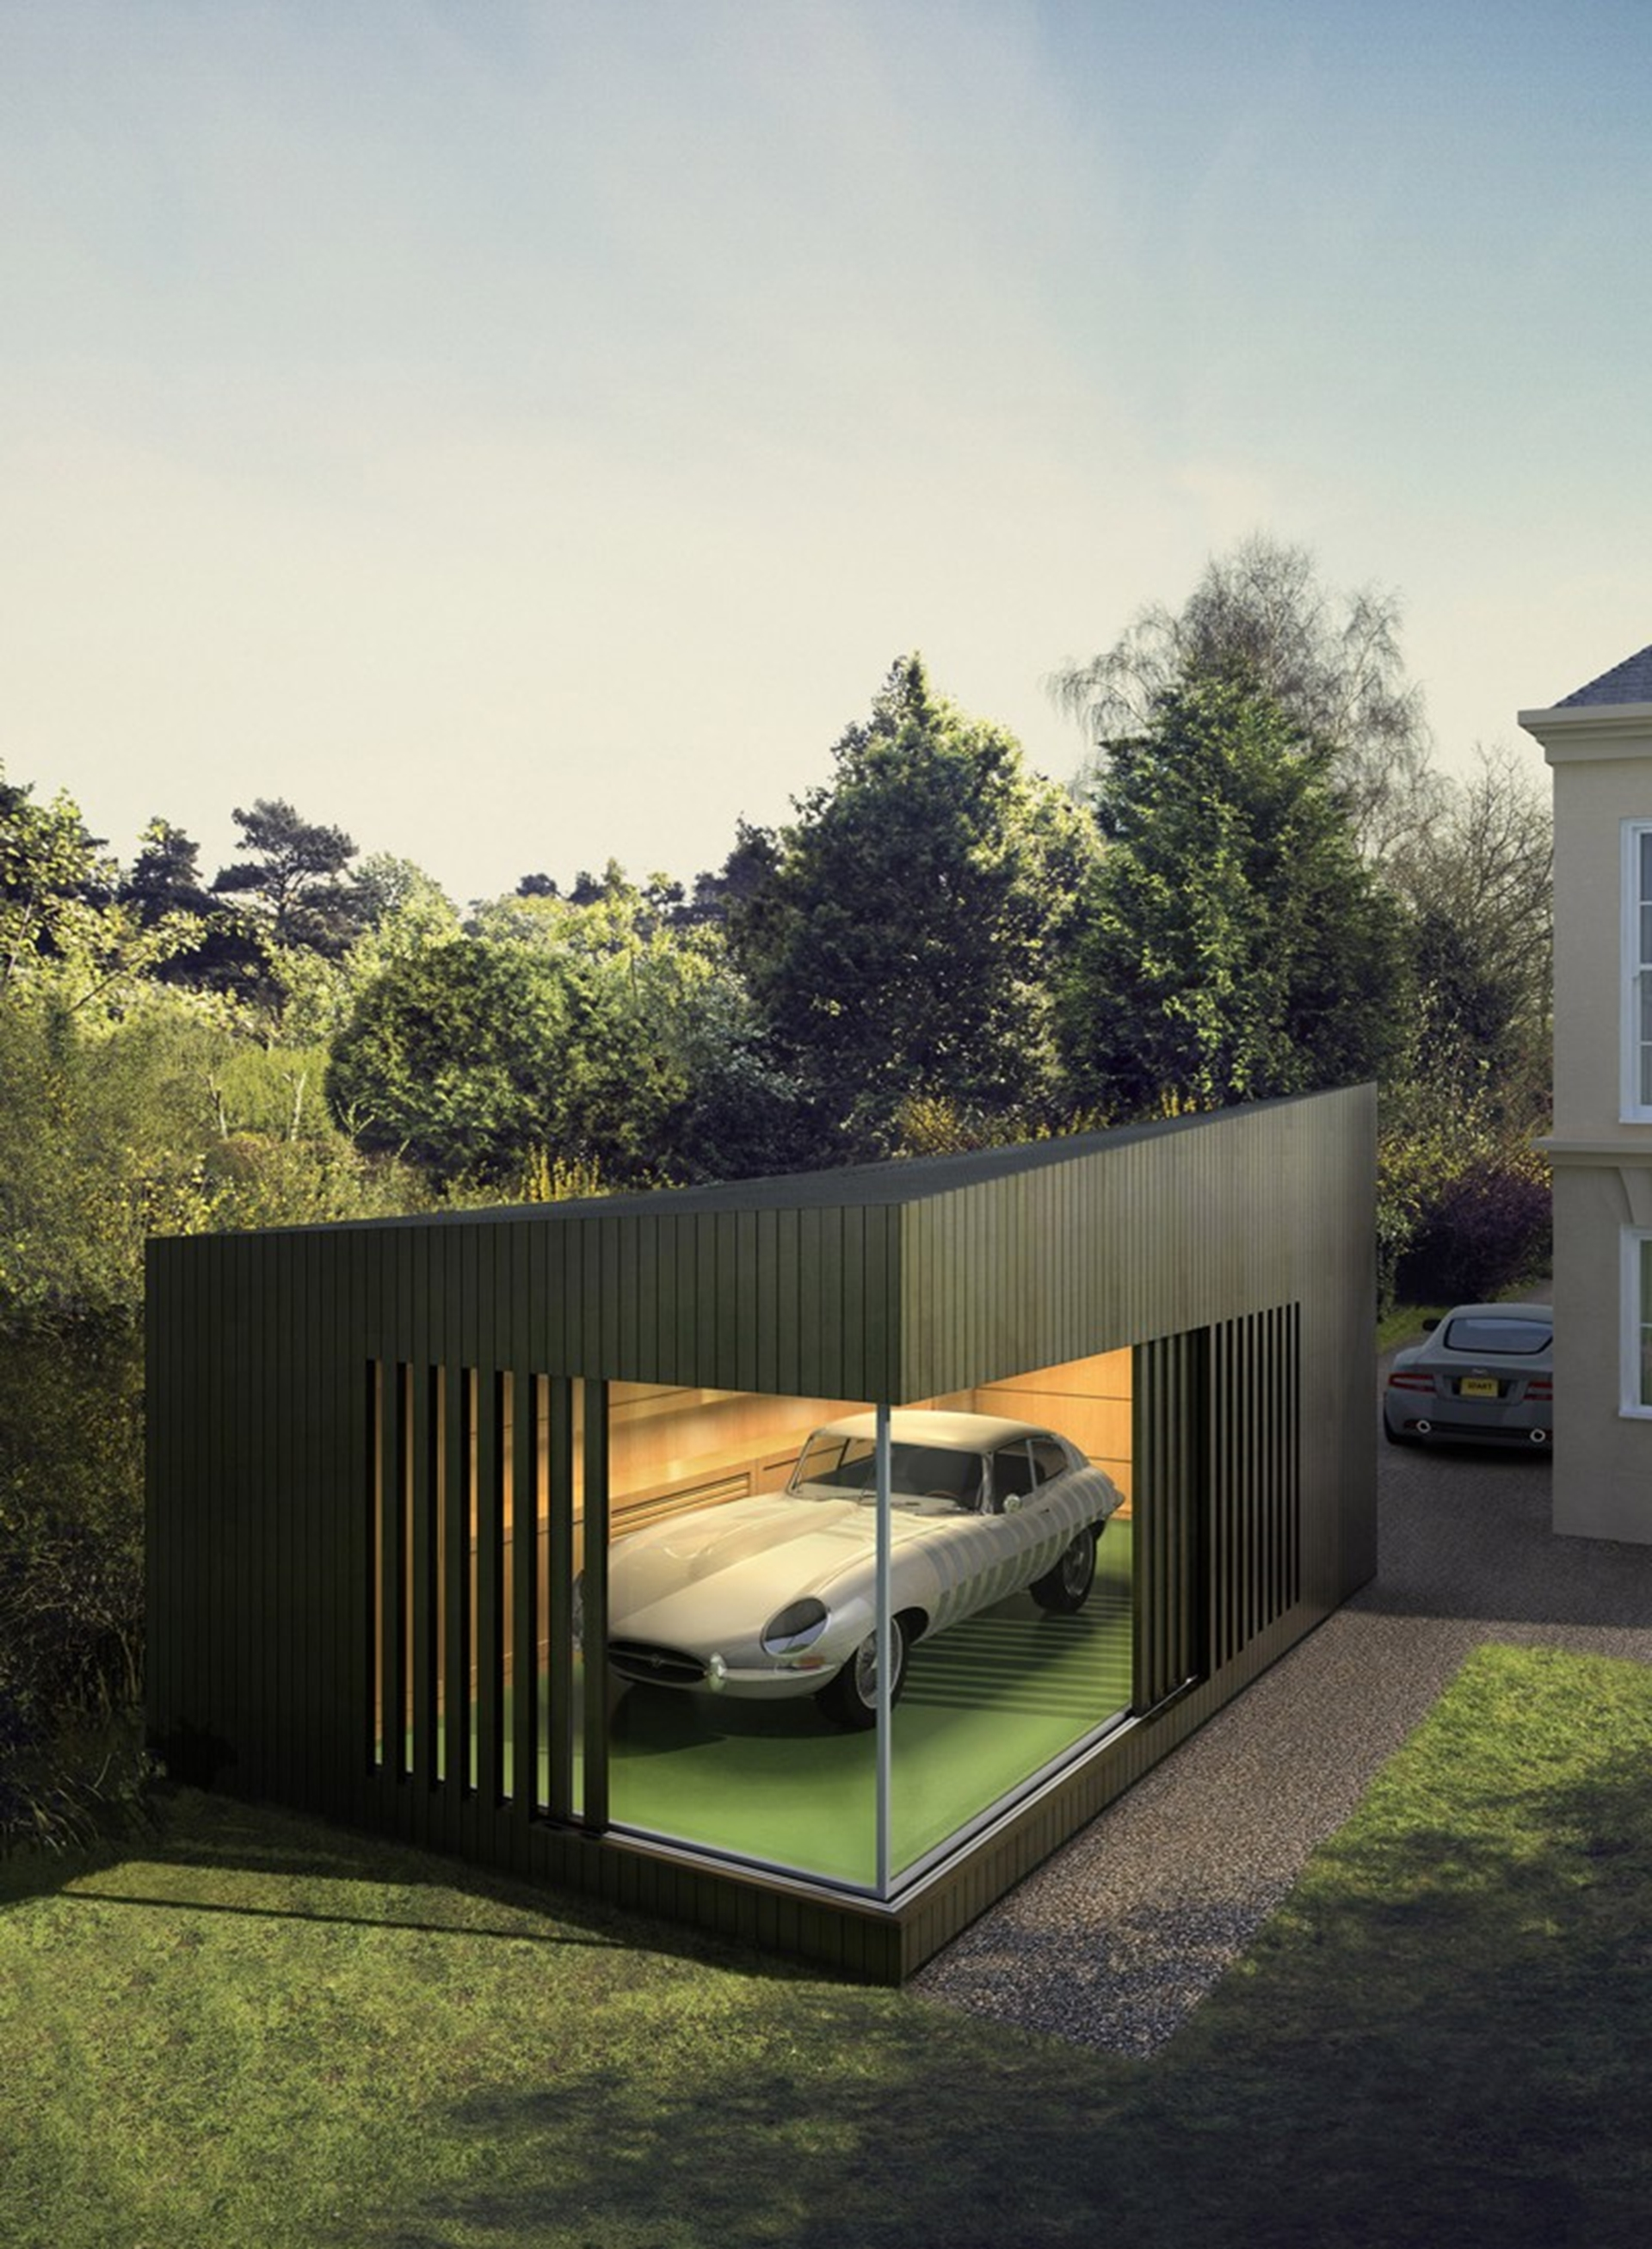 AutoSpace - a stunning new garage design by Ecospace